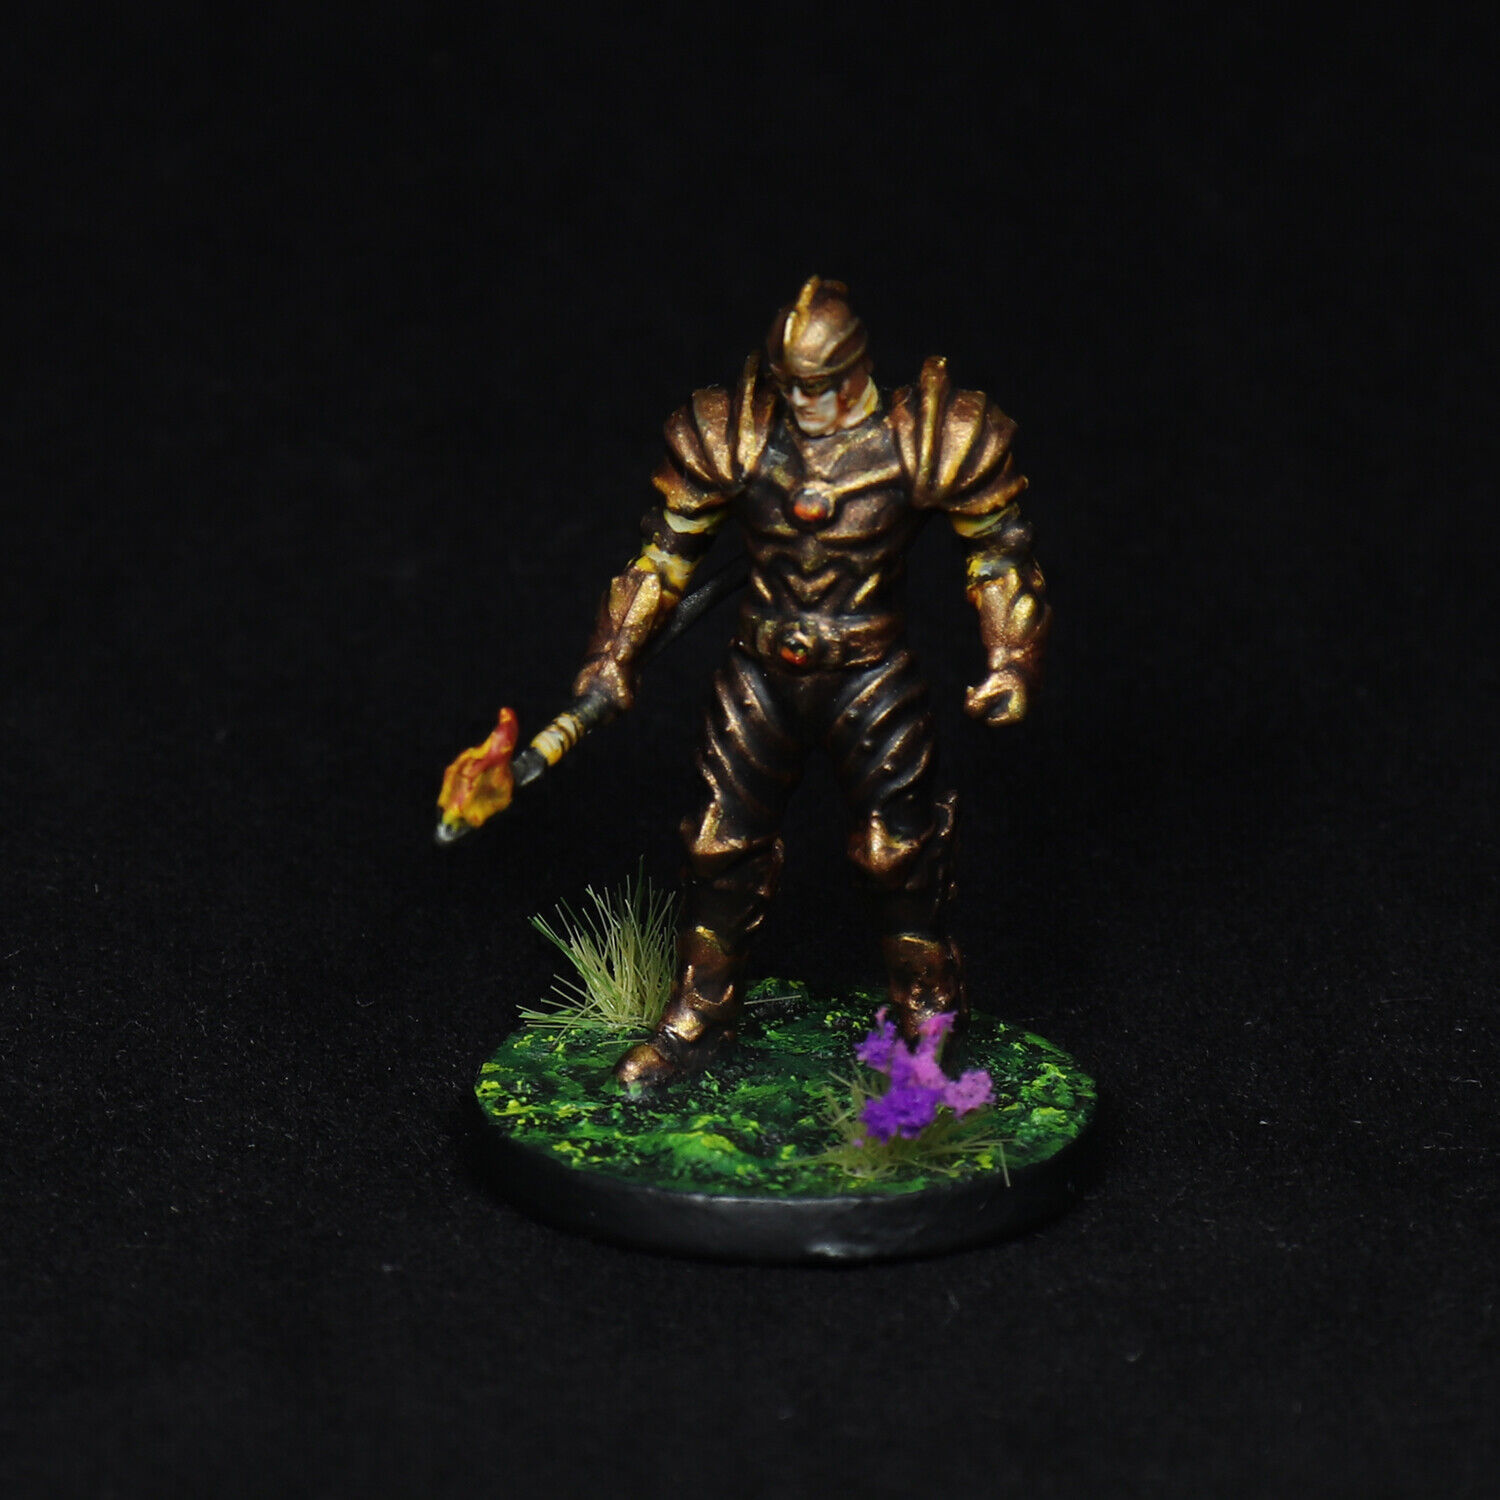 Painted DnD Miniature Fire Cultist Guard Watch Lancer Spearman Fighter Warrior